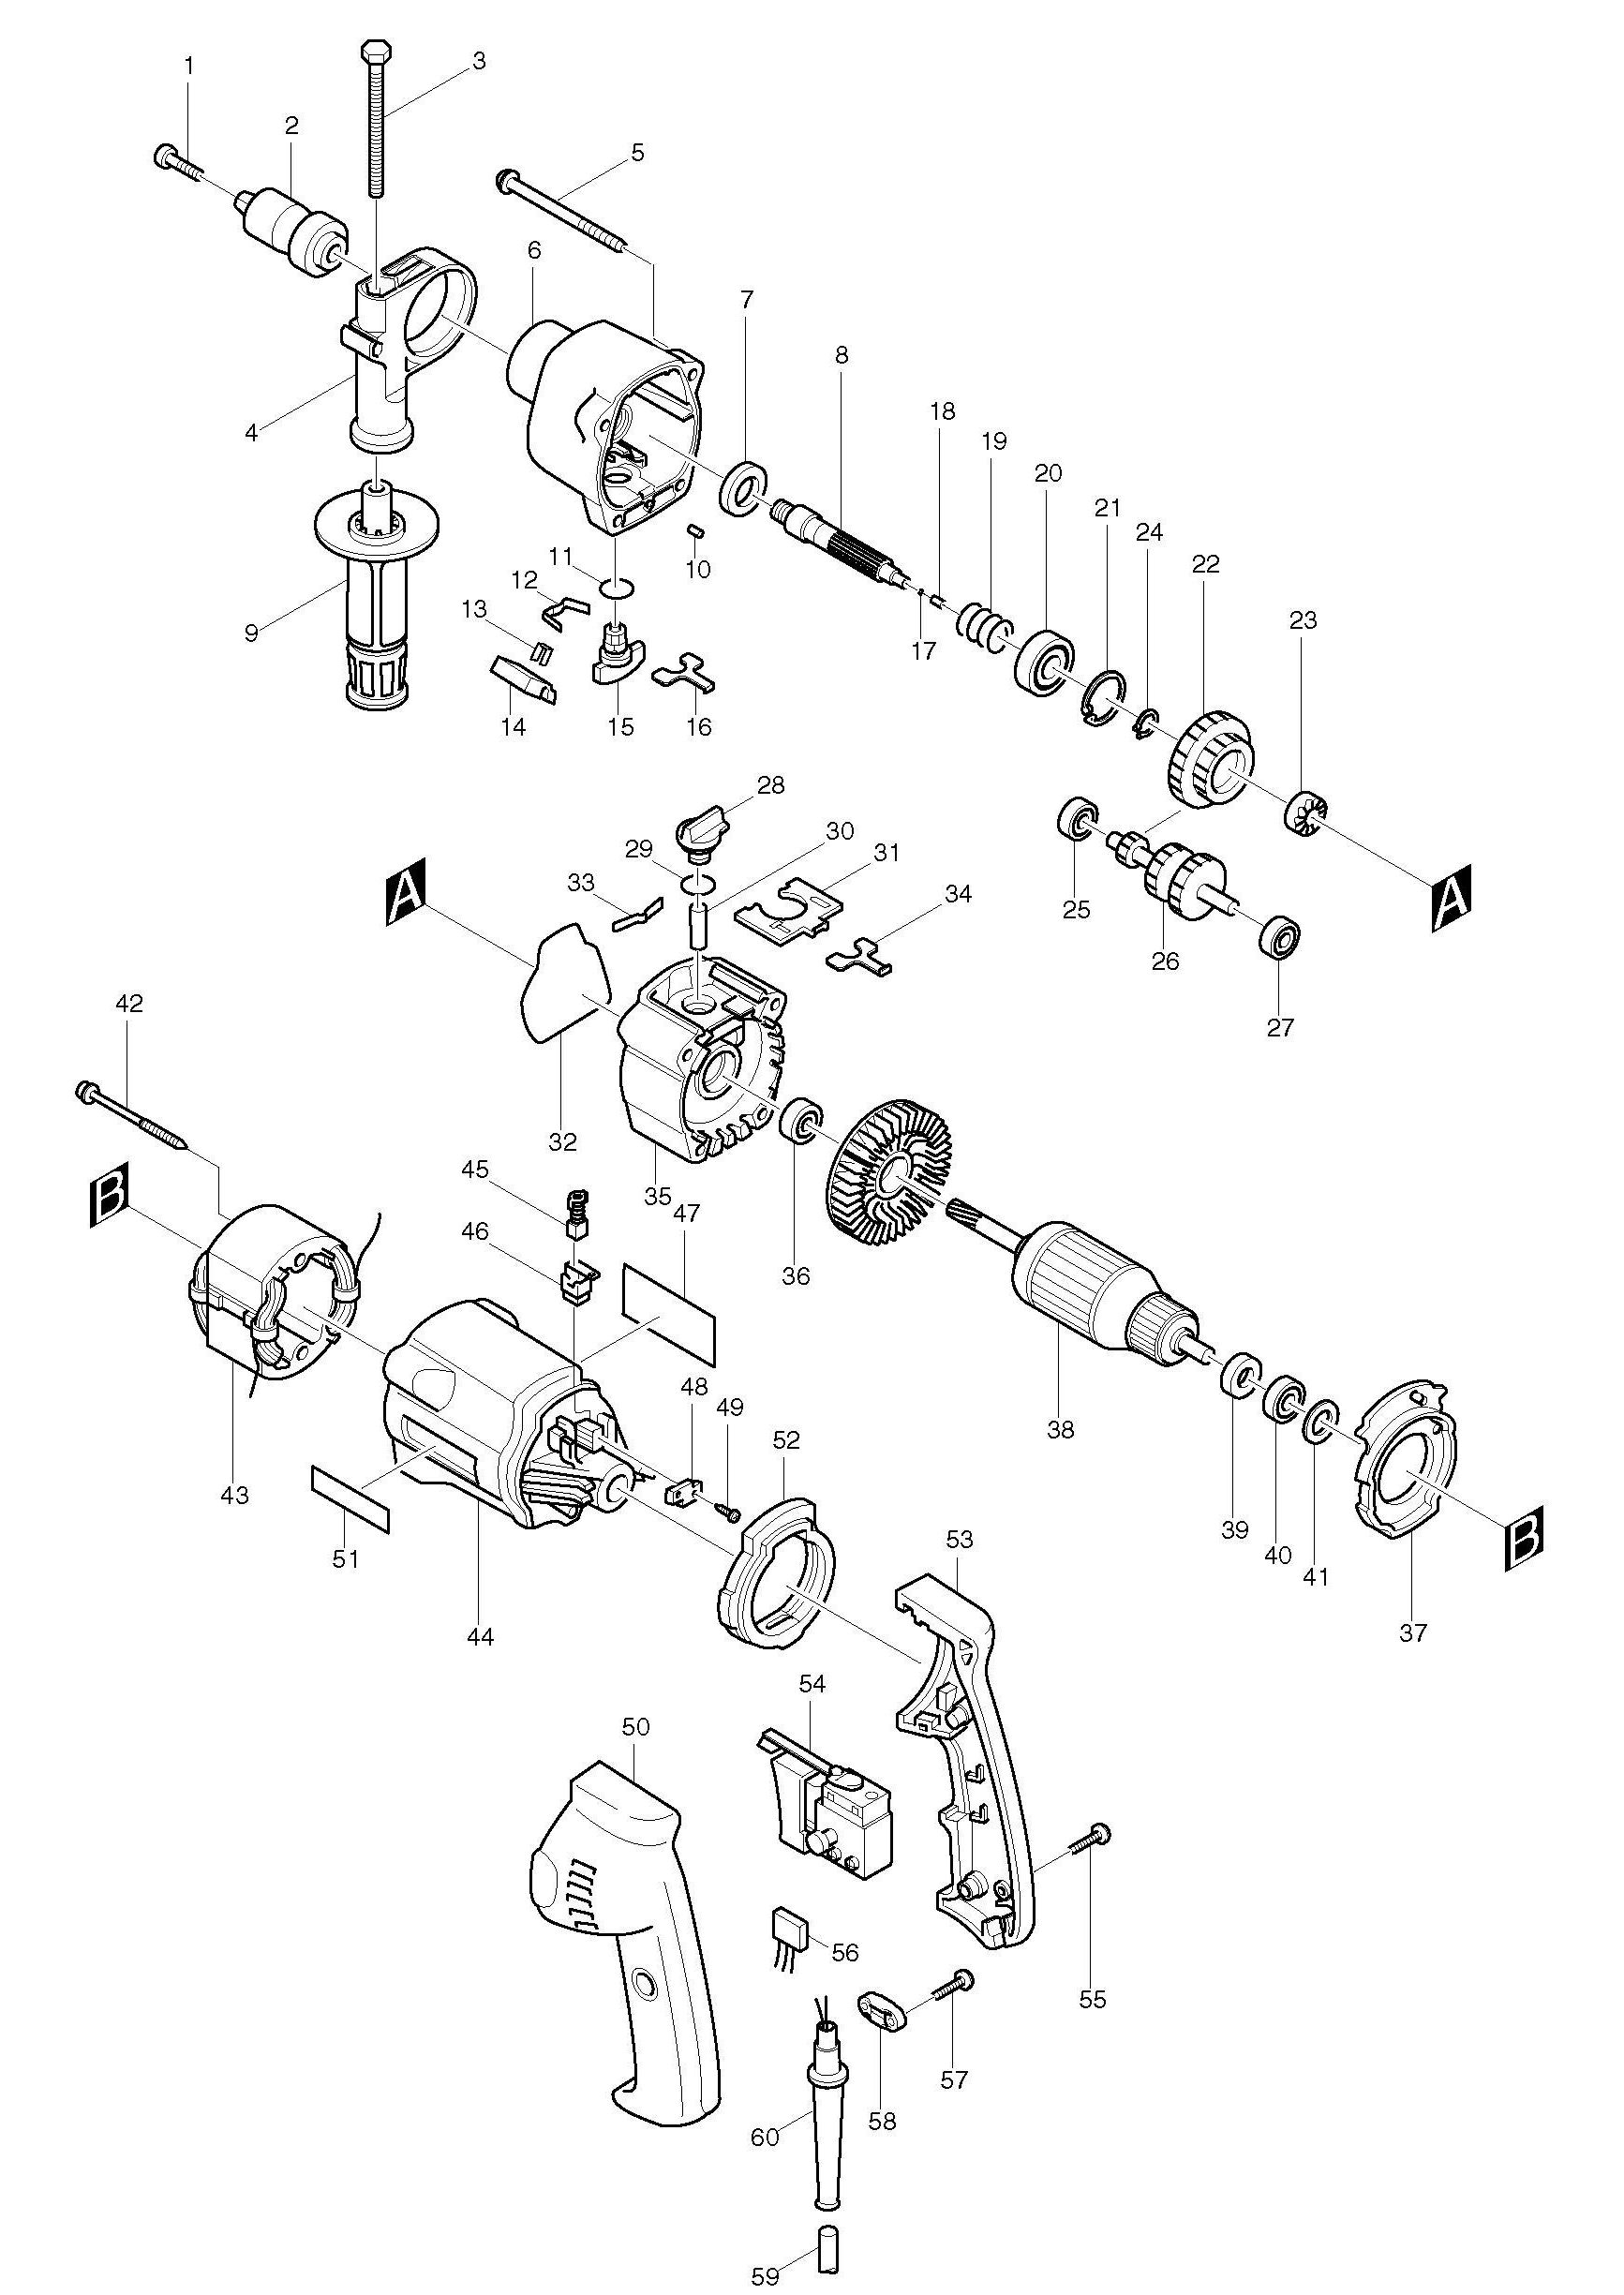 Spares for Makita Hp2033 Percussion Drill SPARE_HP2033